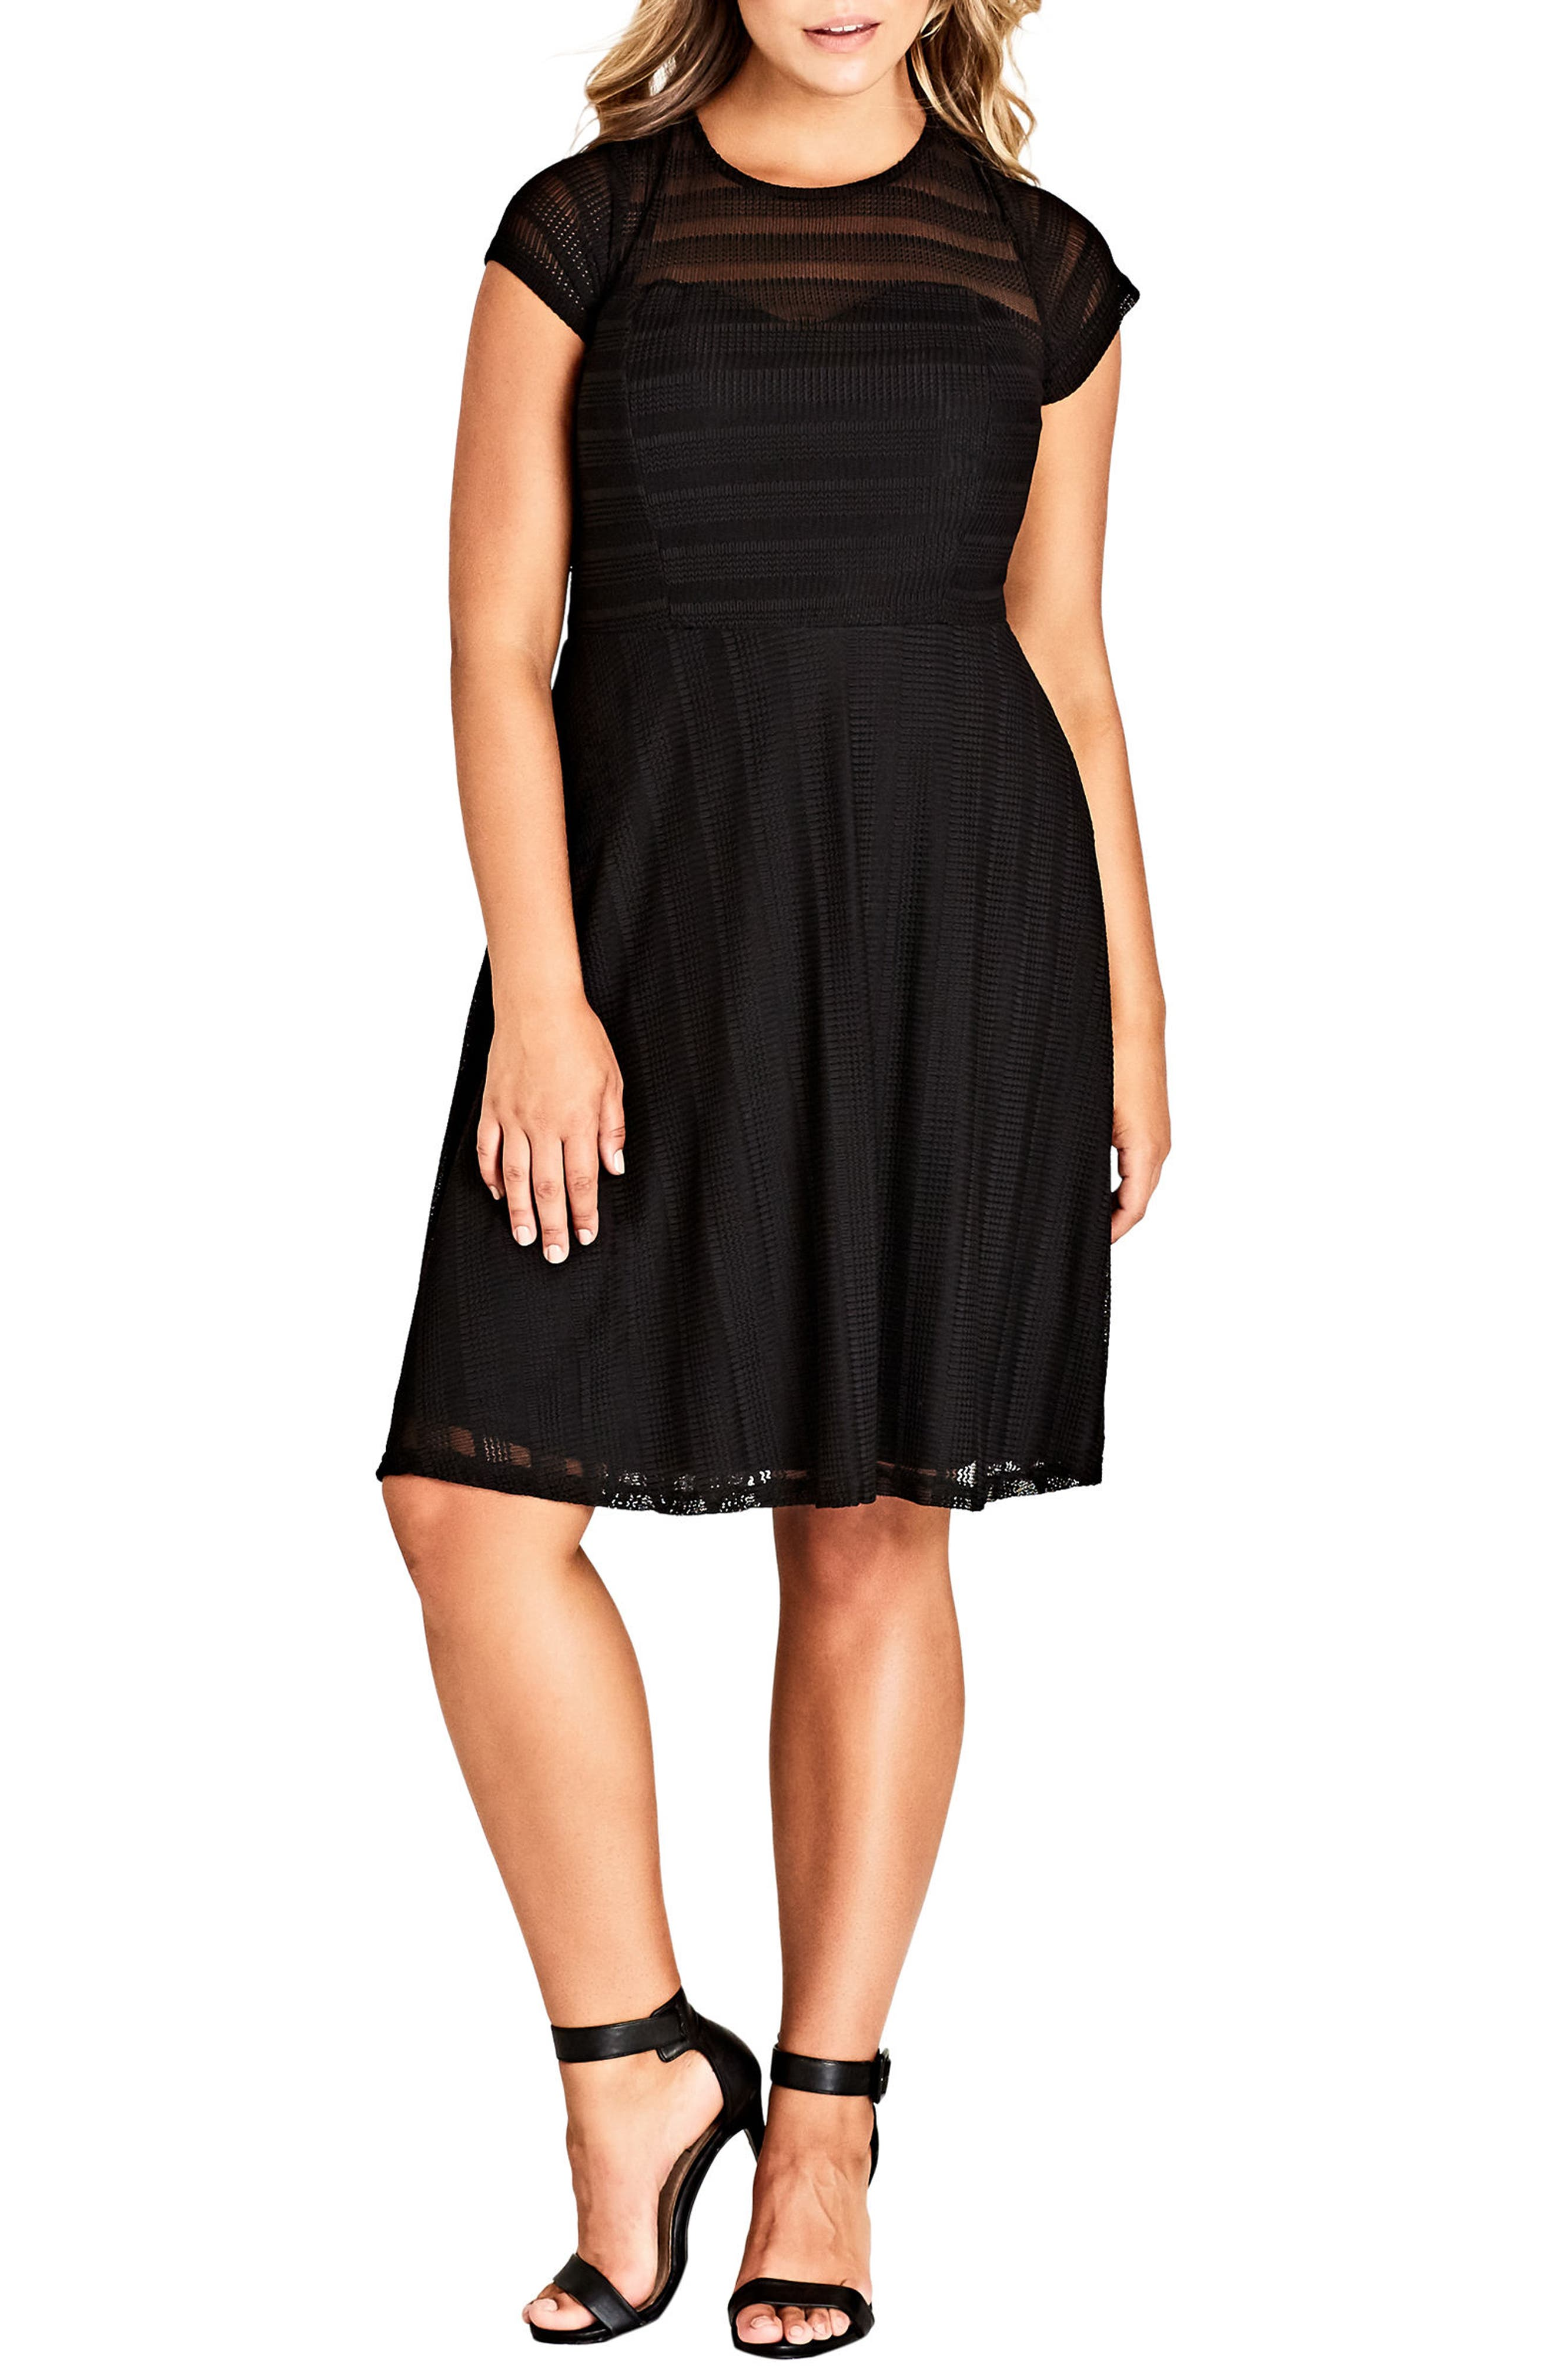 CITY CHIC, Textured Heart Dress, Main thumbnail 1, color, BLACK